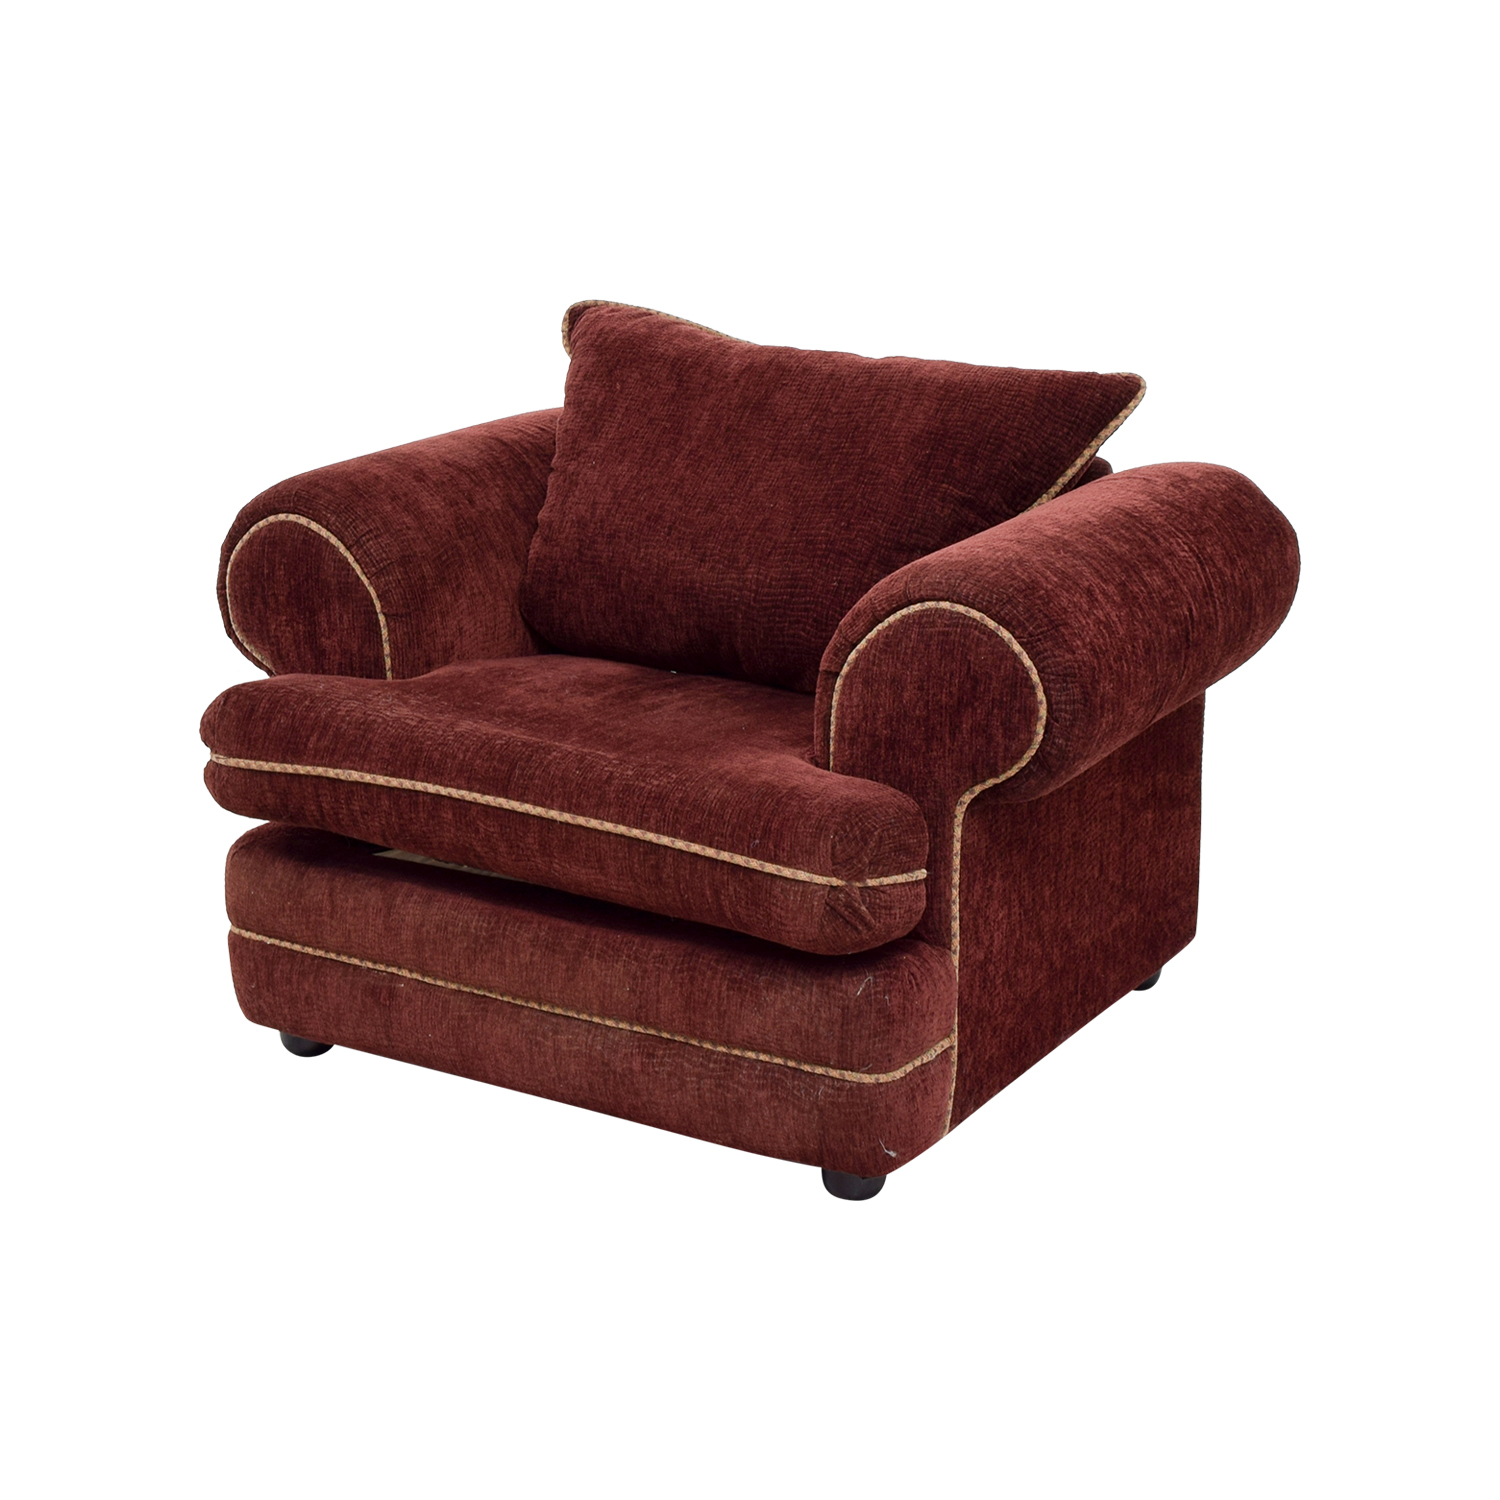 Sealy Sealy Burgundy Accent Chair / Chairs